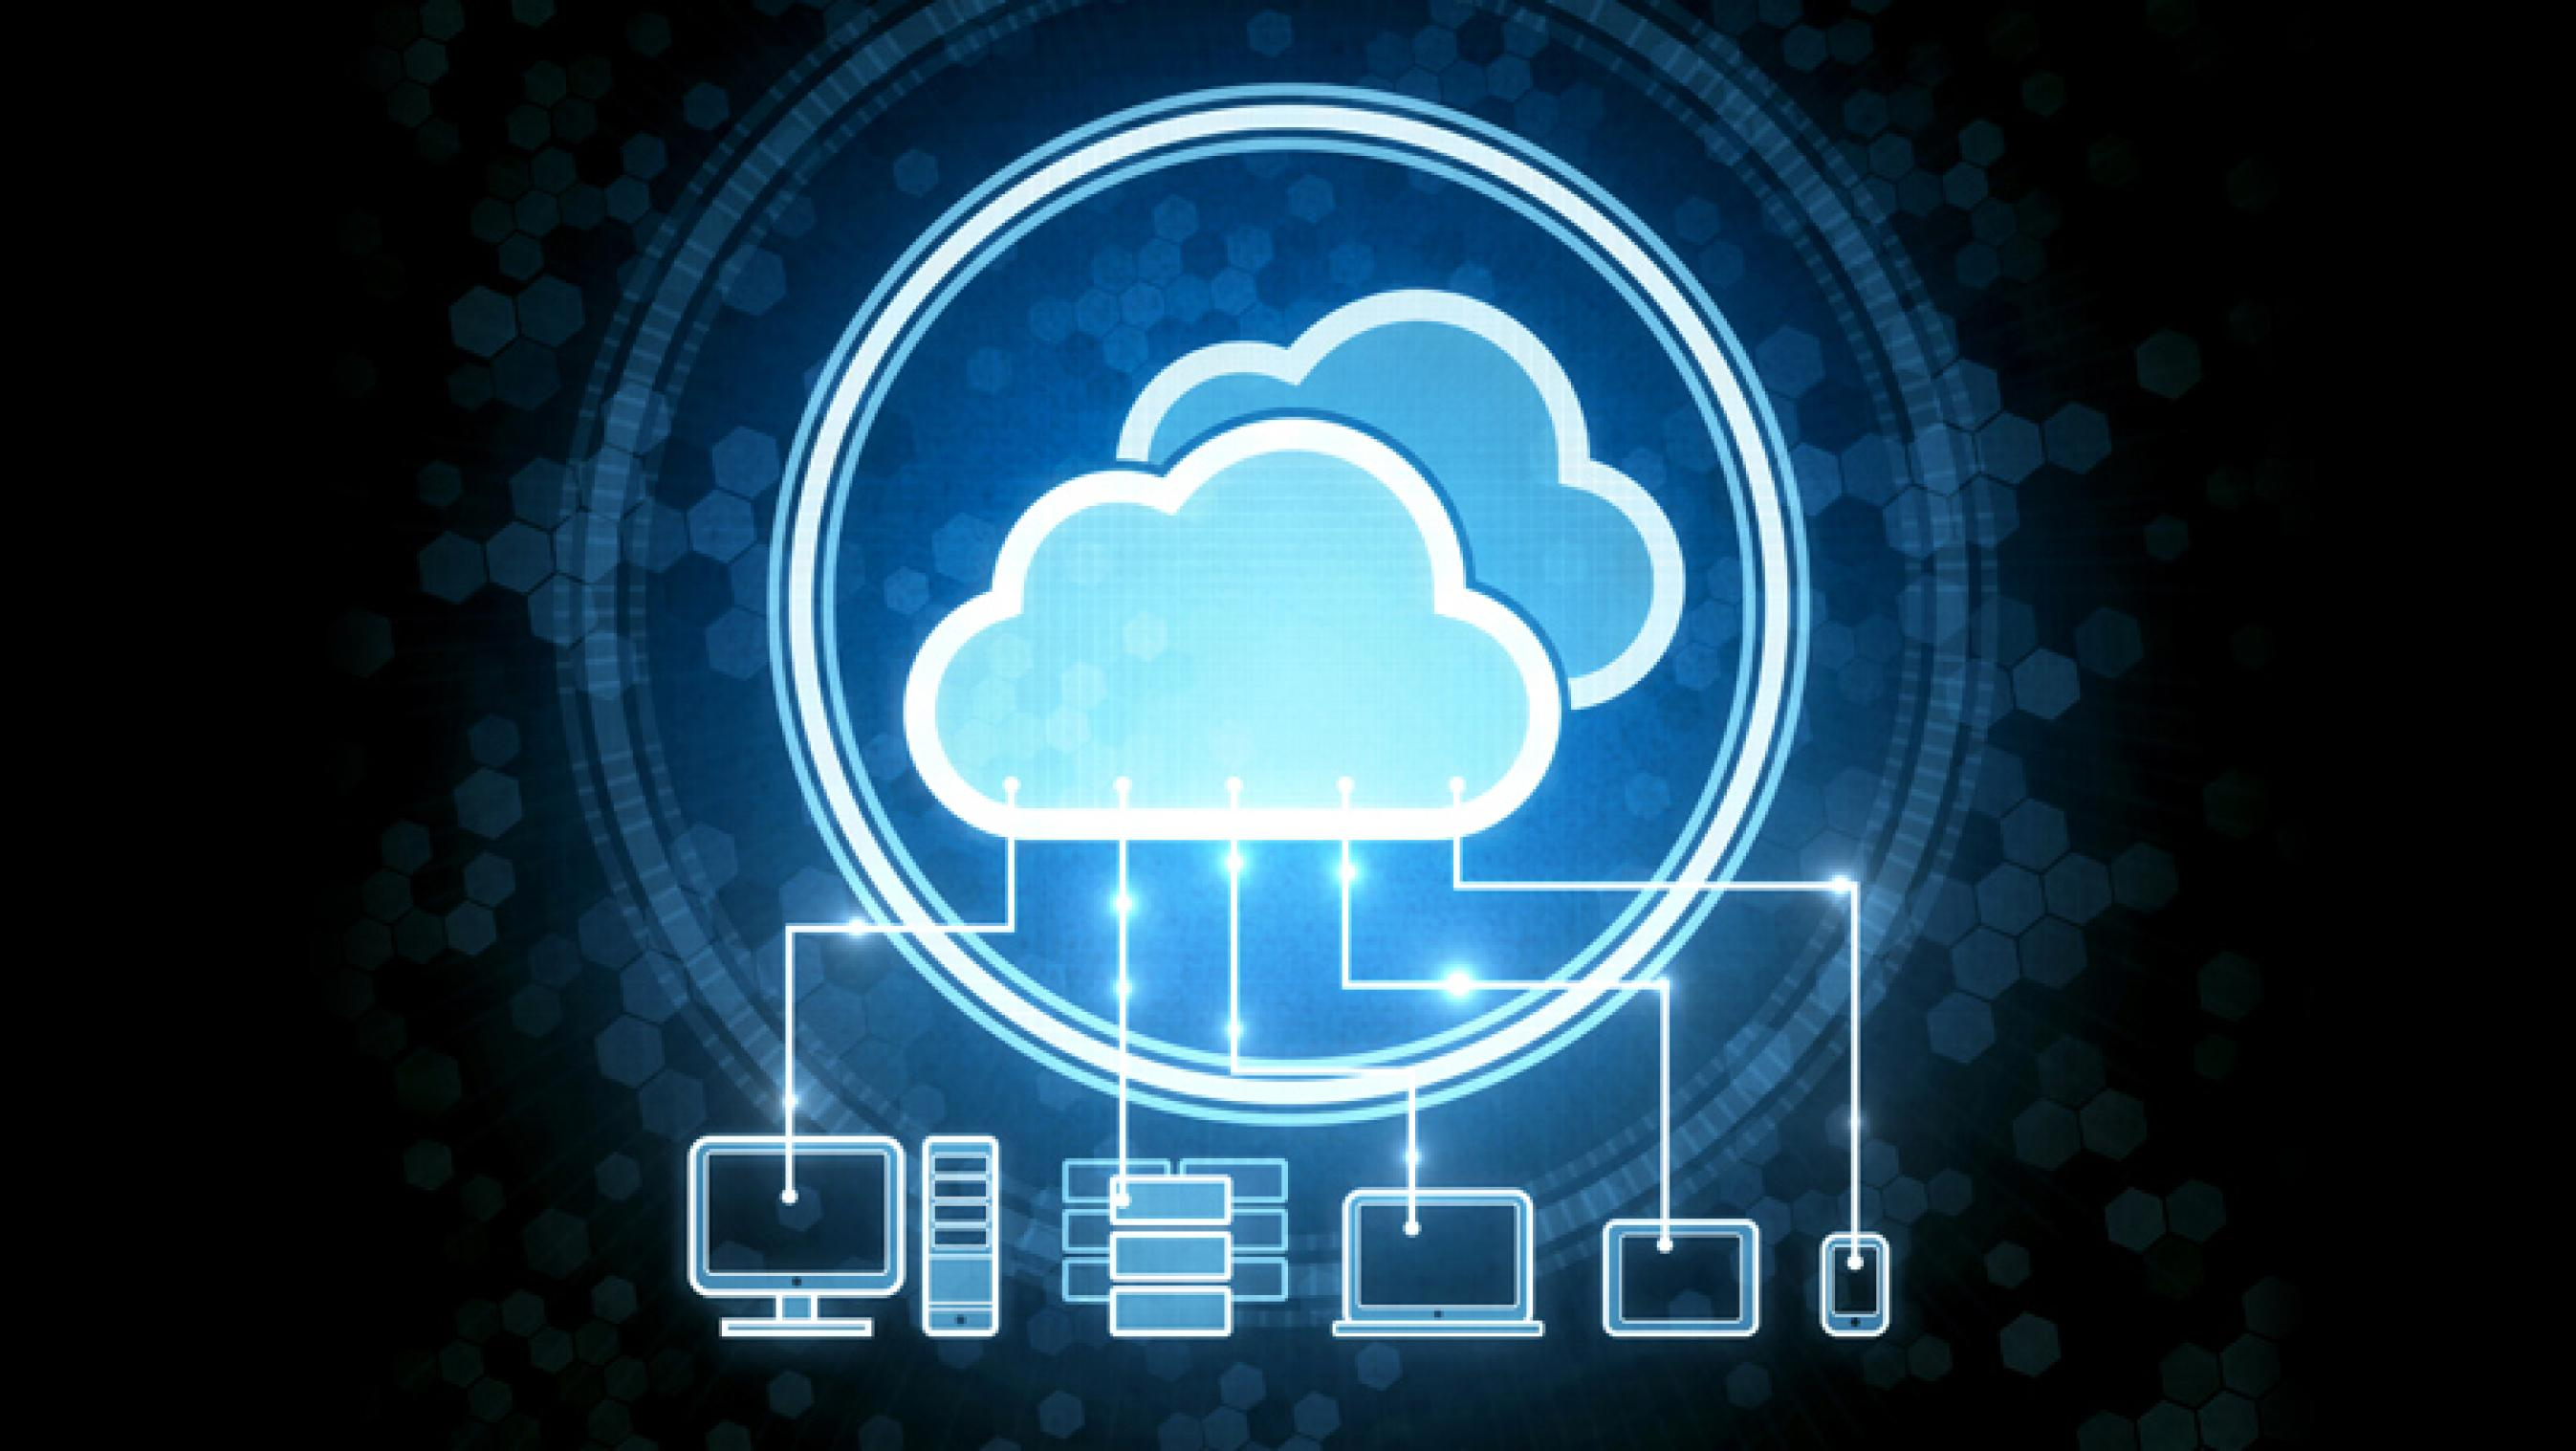 cloud-computing-background.jpg